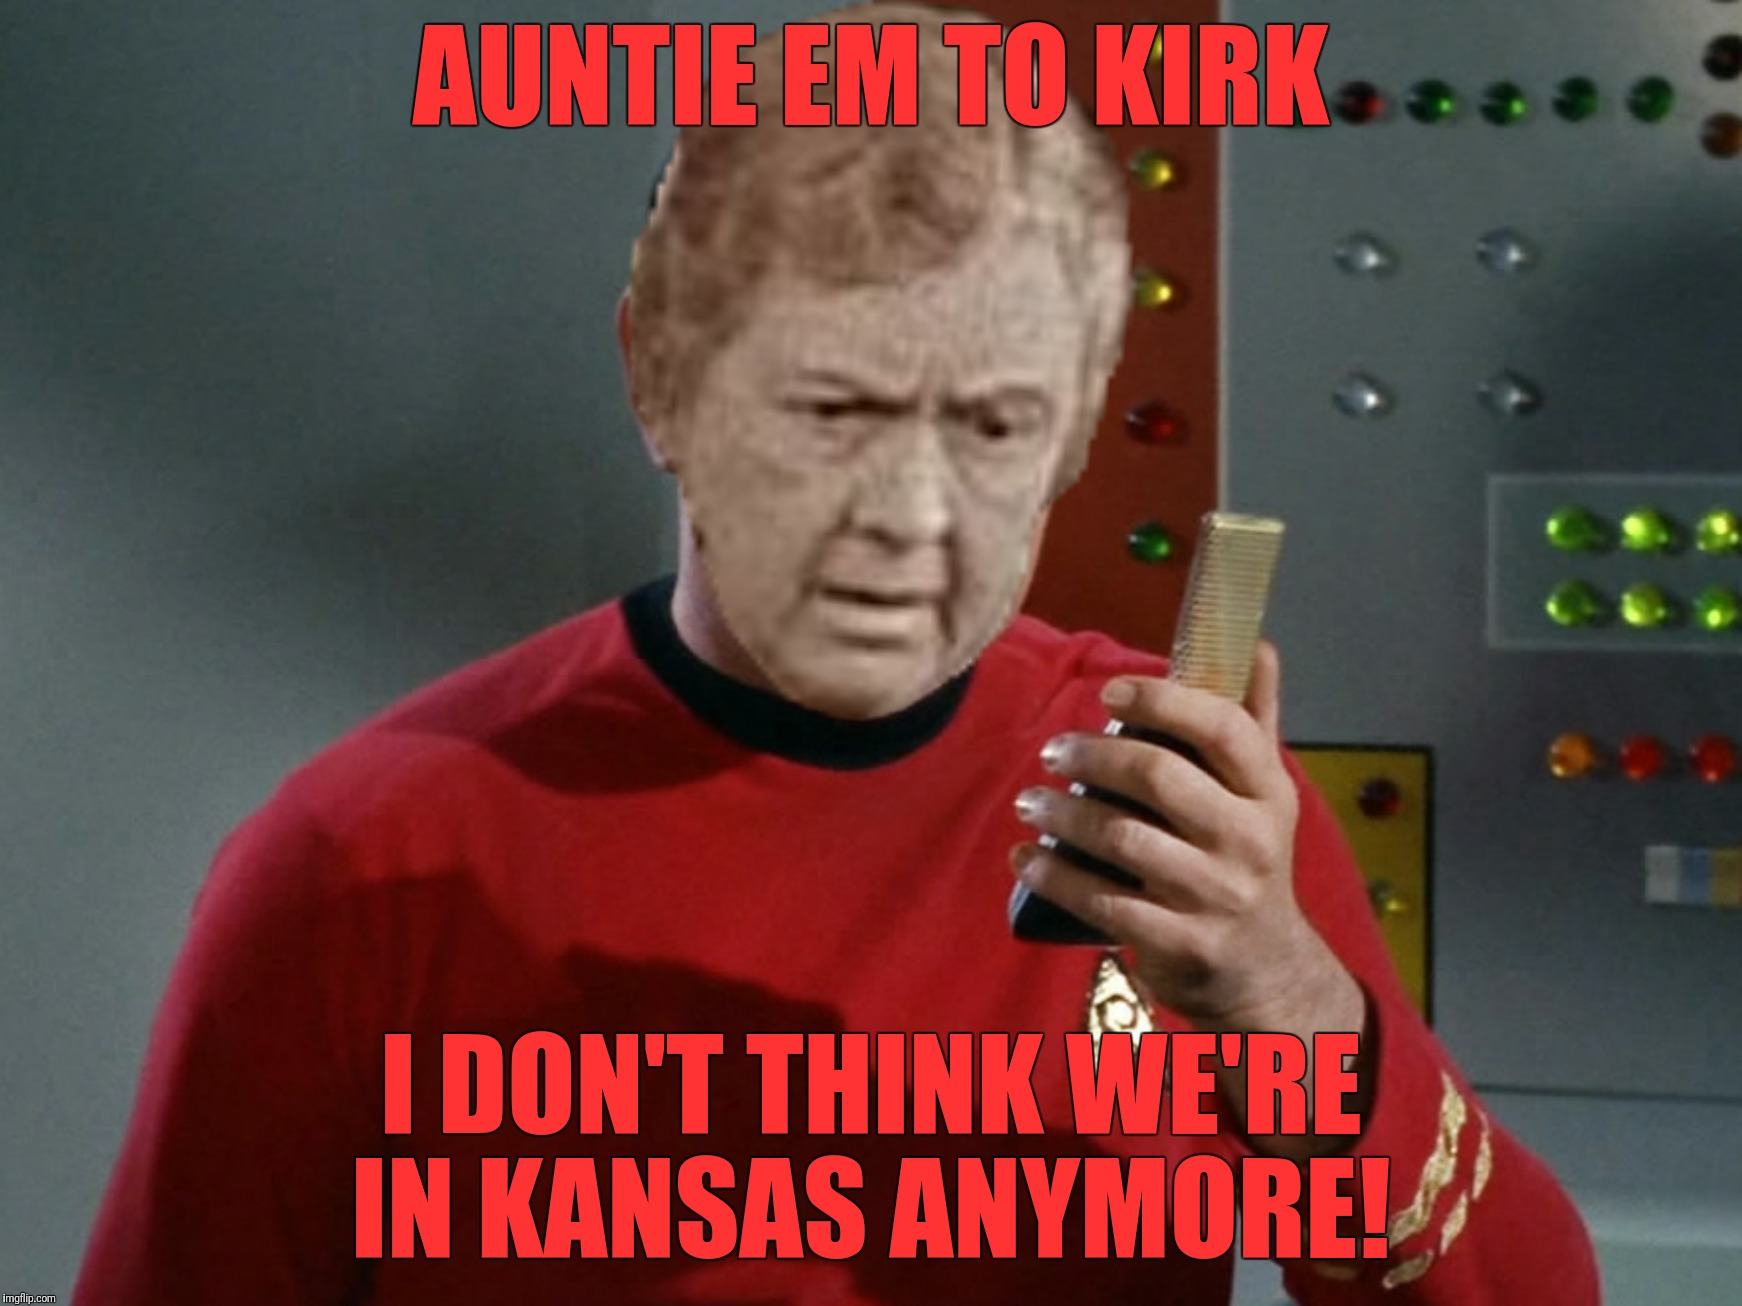 Bad Photoshop Sunday presents:  When Chekov plots a course for somewhere over the rainbow (a submission suggested by nottaBot)  | AUNTIE EM TO KIRK I DON'T THINK WE'RE IN KANSAS ANYMORE! | image tagged in bad photoshop sunday,wizard of oz,auntie em,star trek,scotty | made w/ Imgflip meme maker